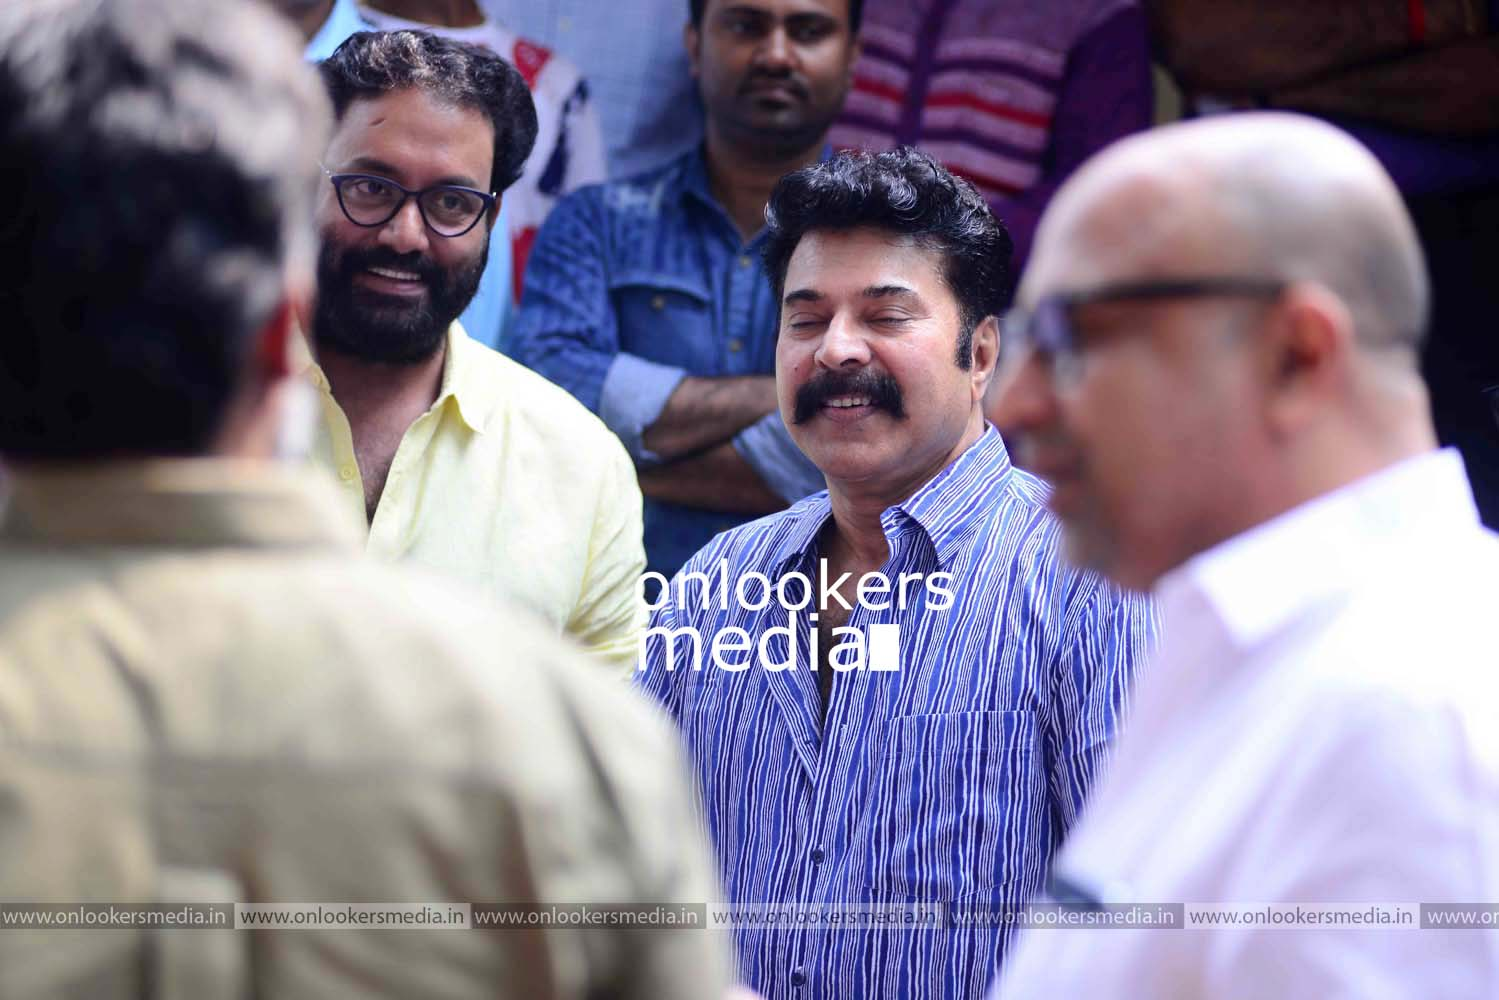 http://onlookersmedia.in/wp-content/uploads/2016/11/Puthan-Panam-Pooja-Stills-Photos-Mammootty-Ranjith-4.jpg